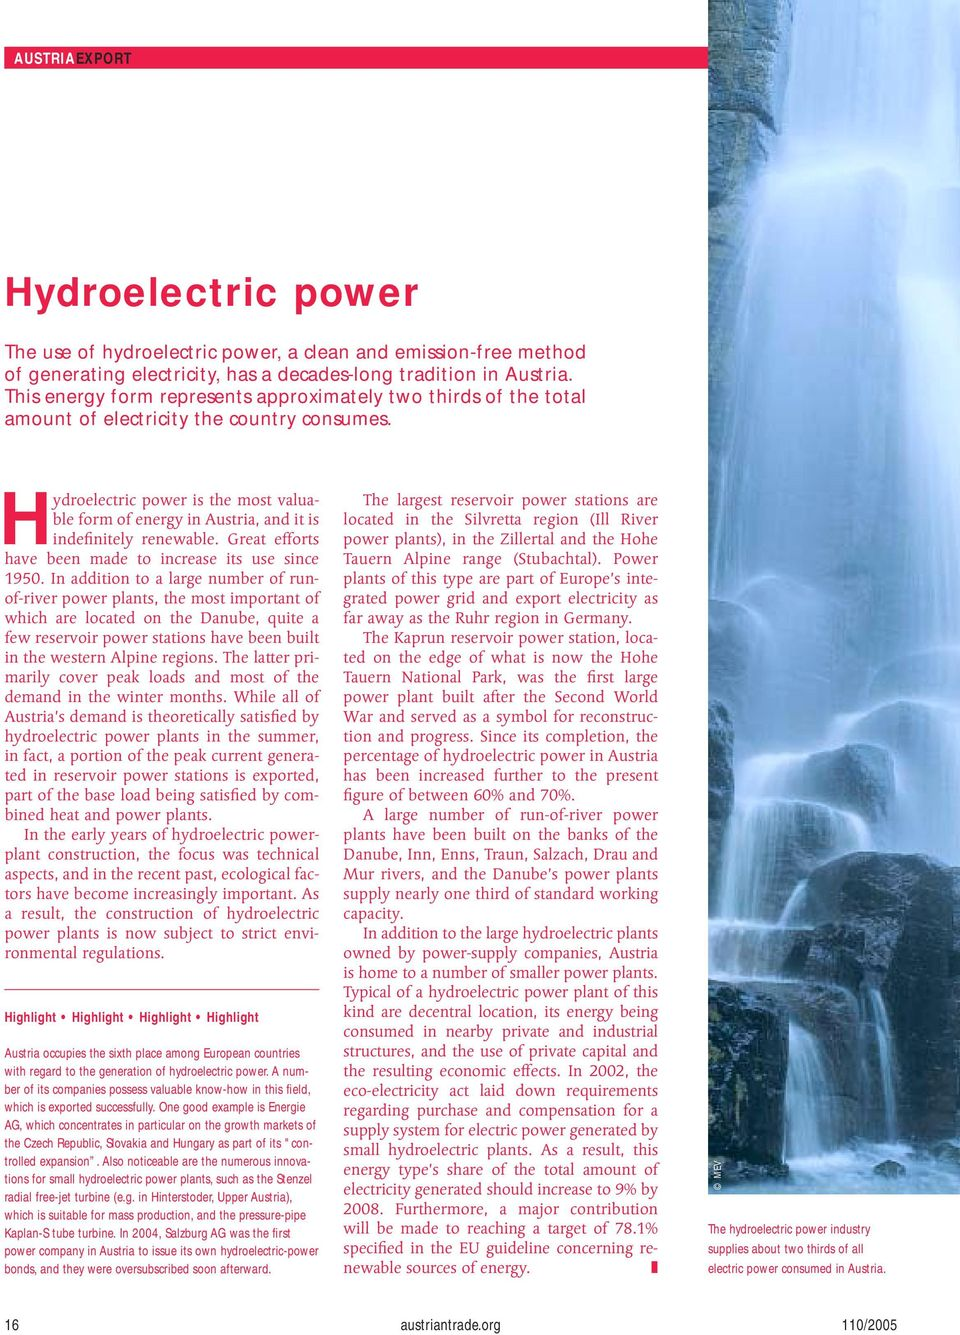 Hydroelectric power is the most valuable form of energy in Austria, and it is indefinitely renewable. Great efforts have been made to increase its use since 1950.